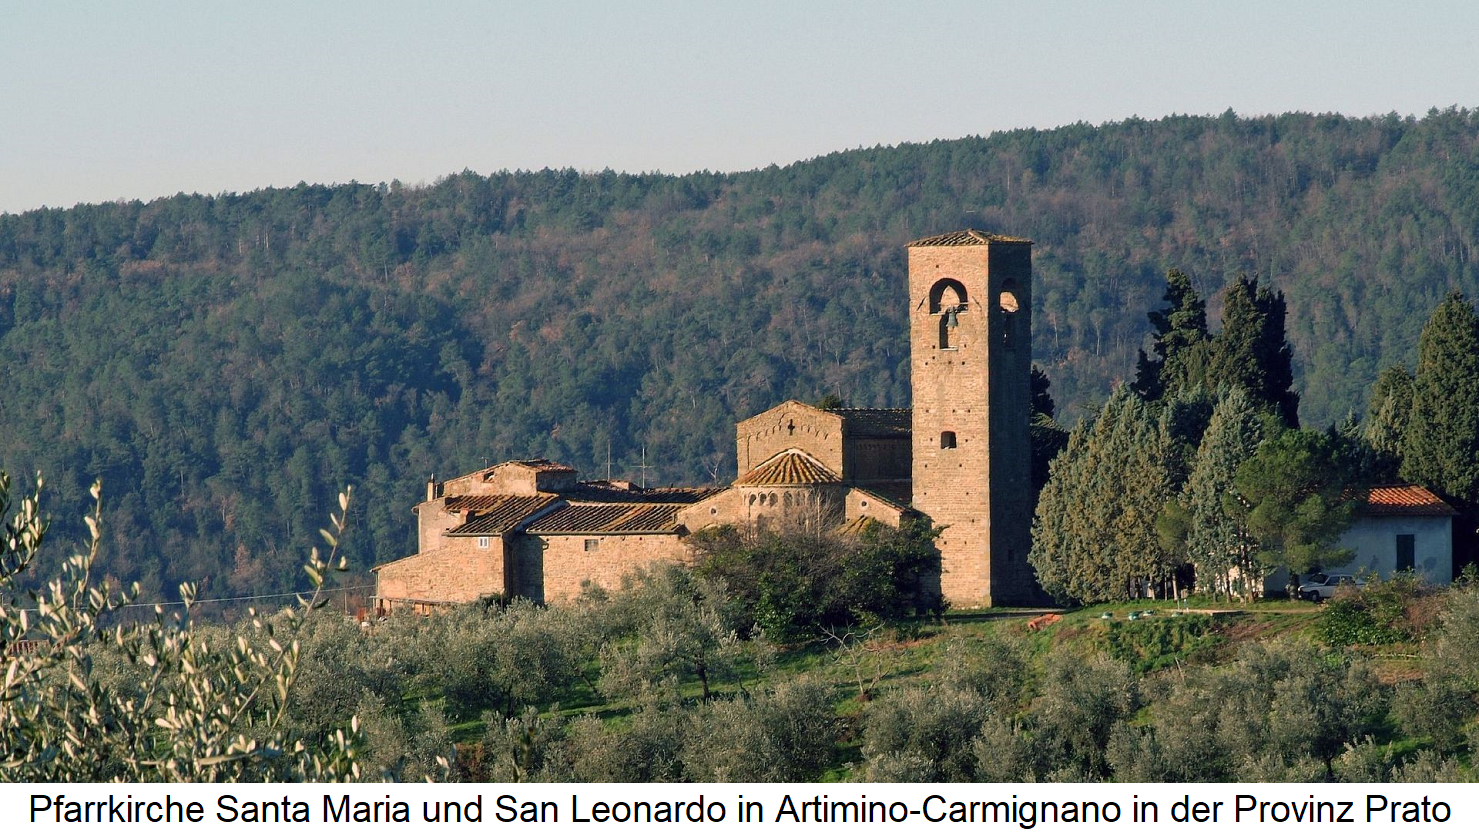 Parish Church of Santa Maria and San Leonardo in Artimino-Carmignano in the province of Prato